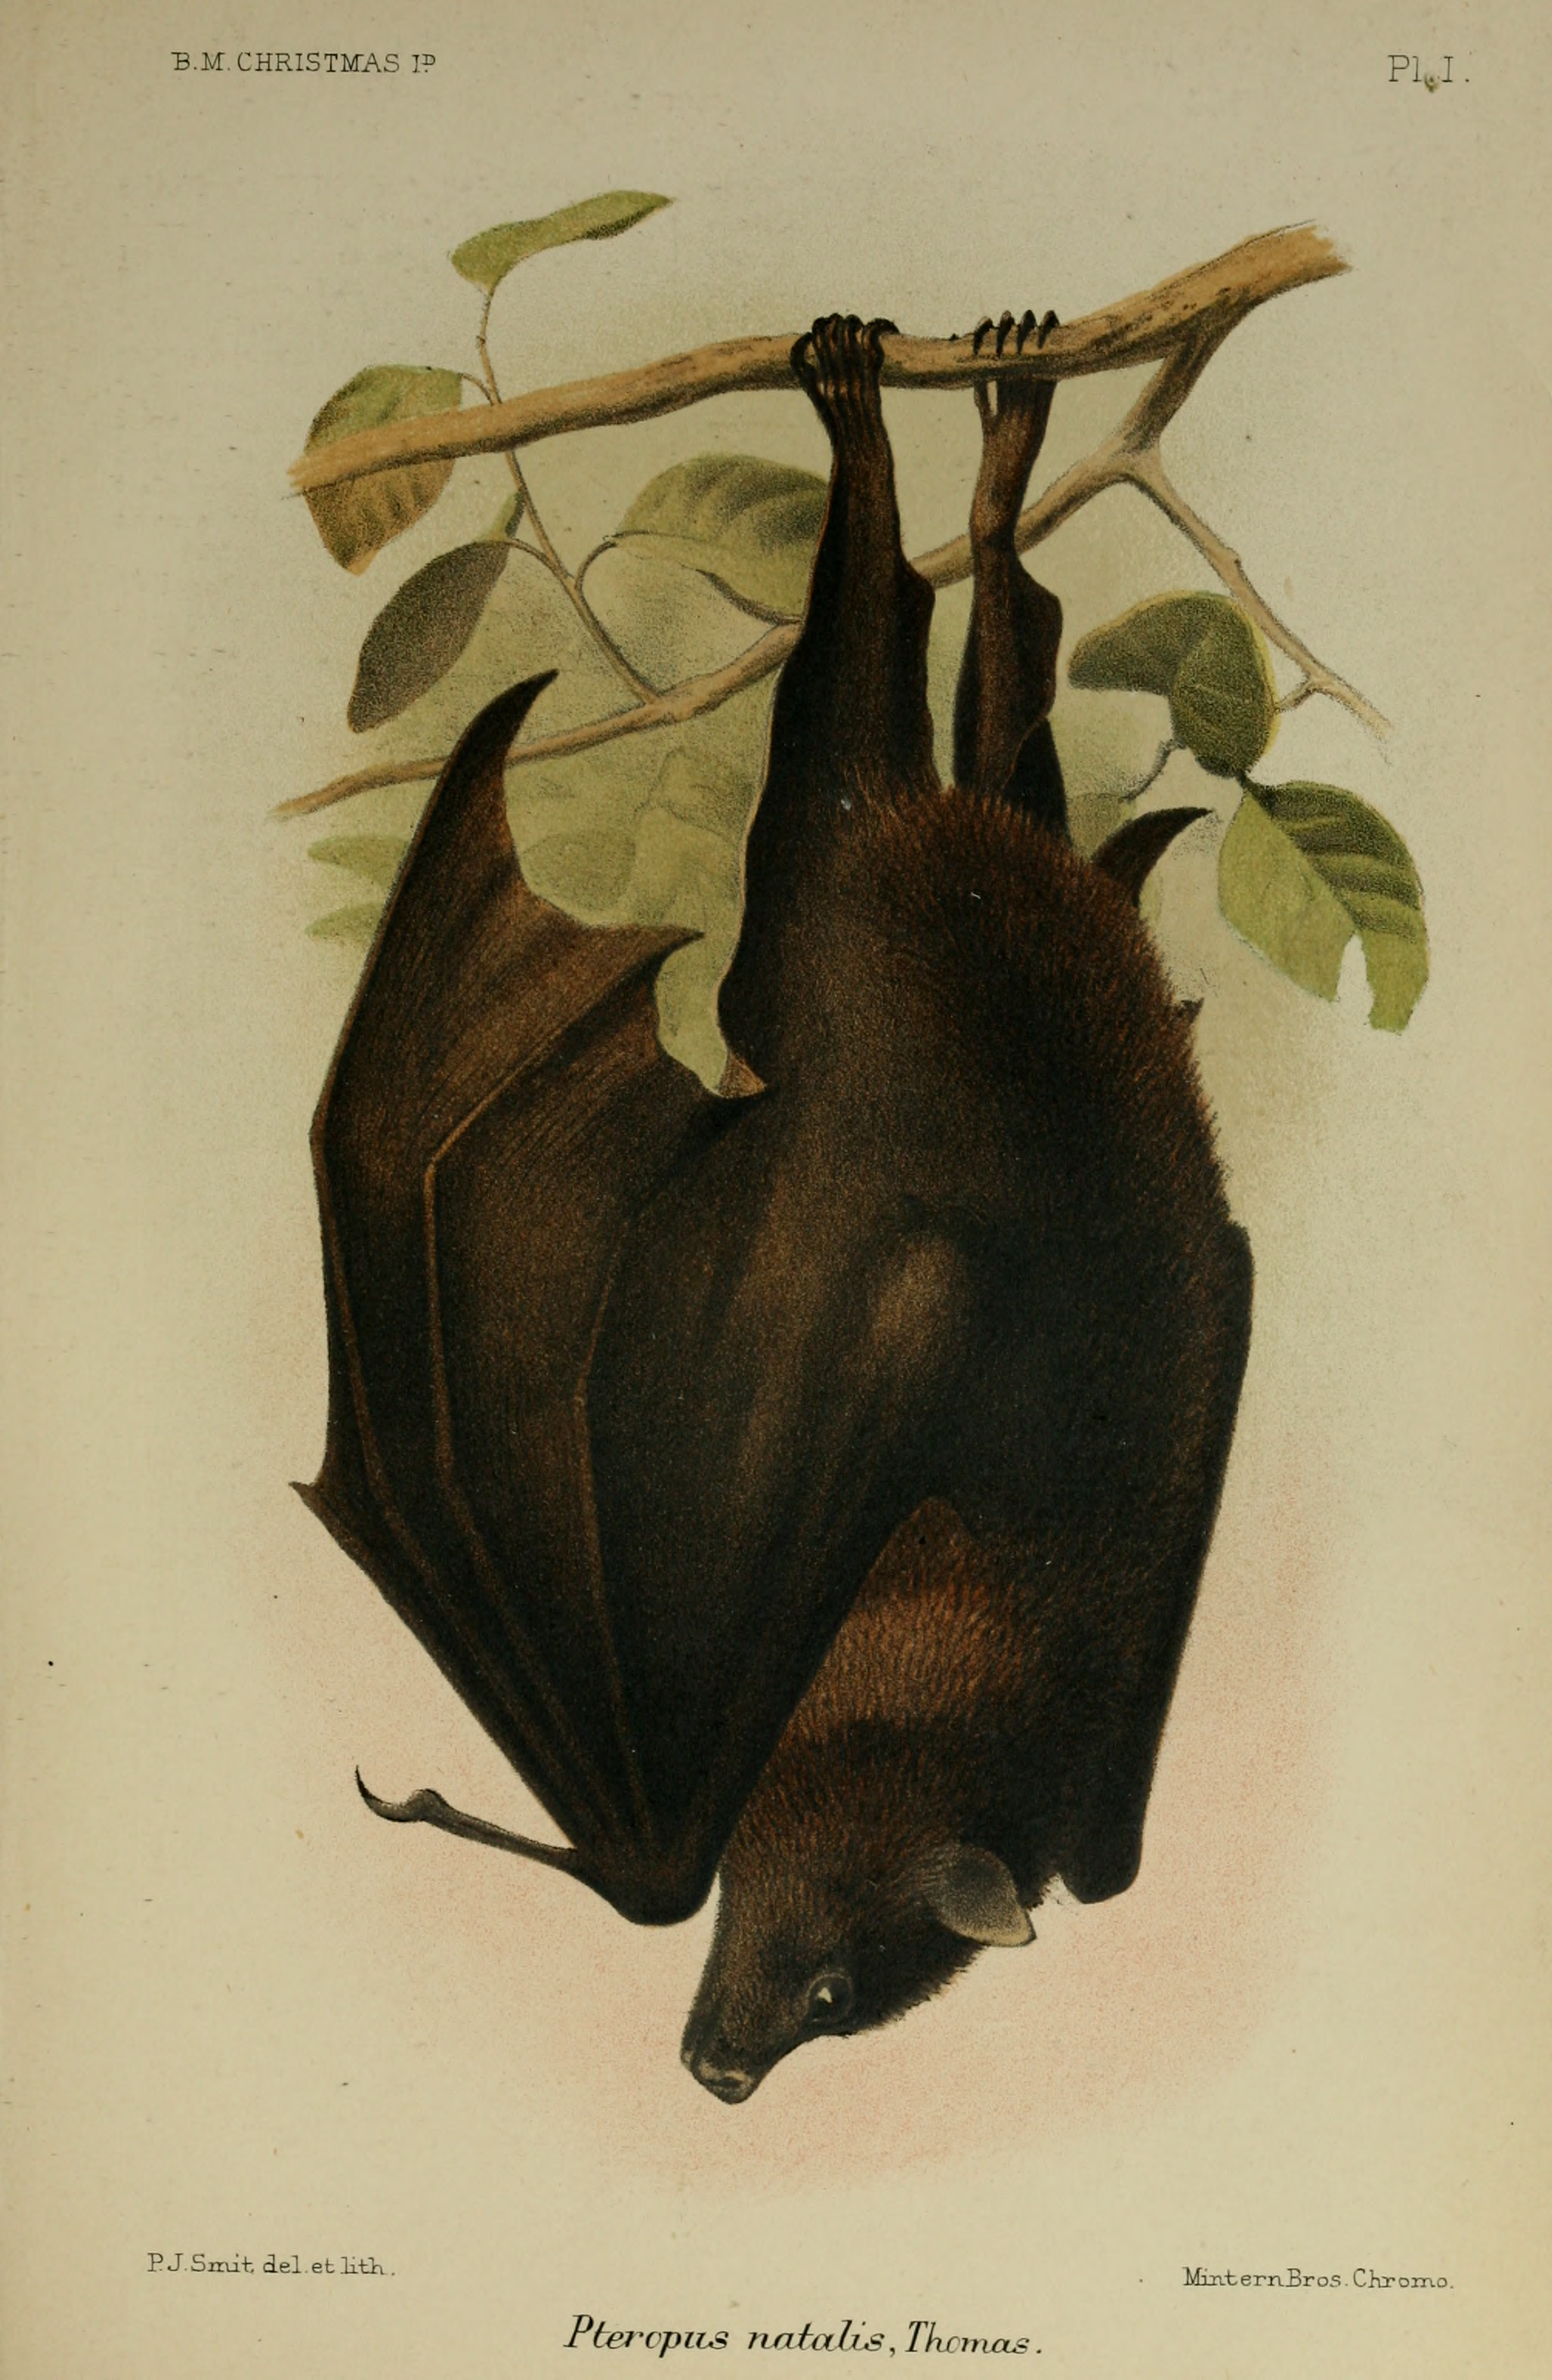 A Monograph of the Chirstmas Island Flying-fox - Andrews, C.W. (1900), British Museum of Natural History, London